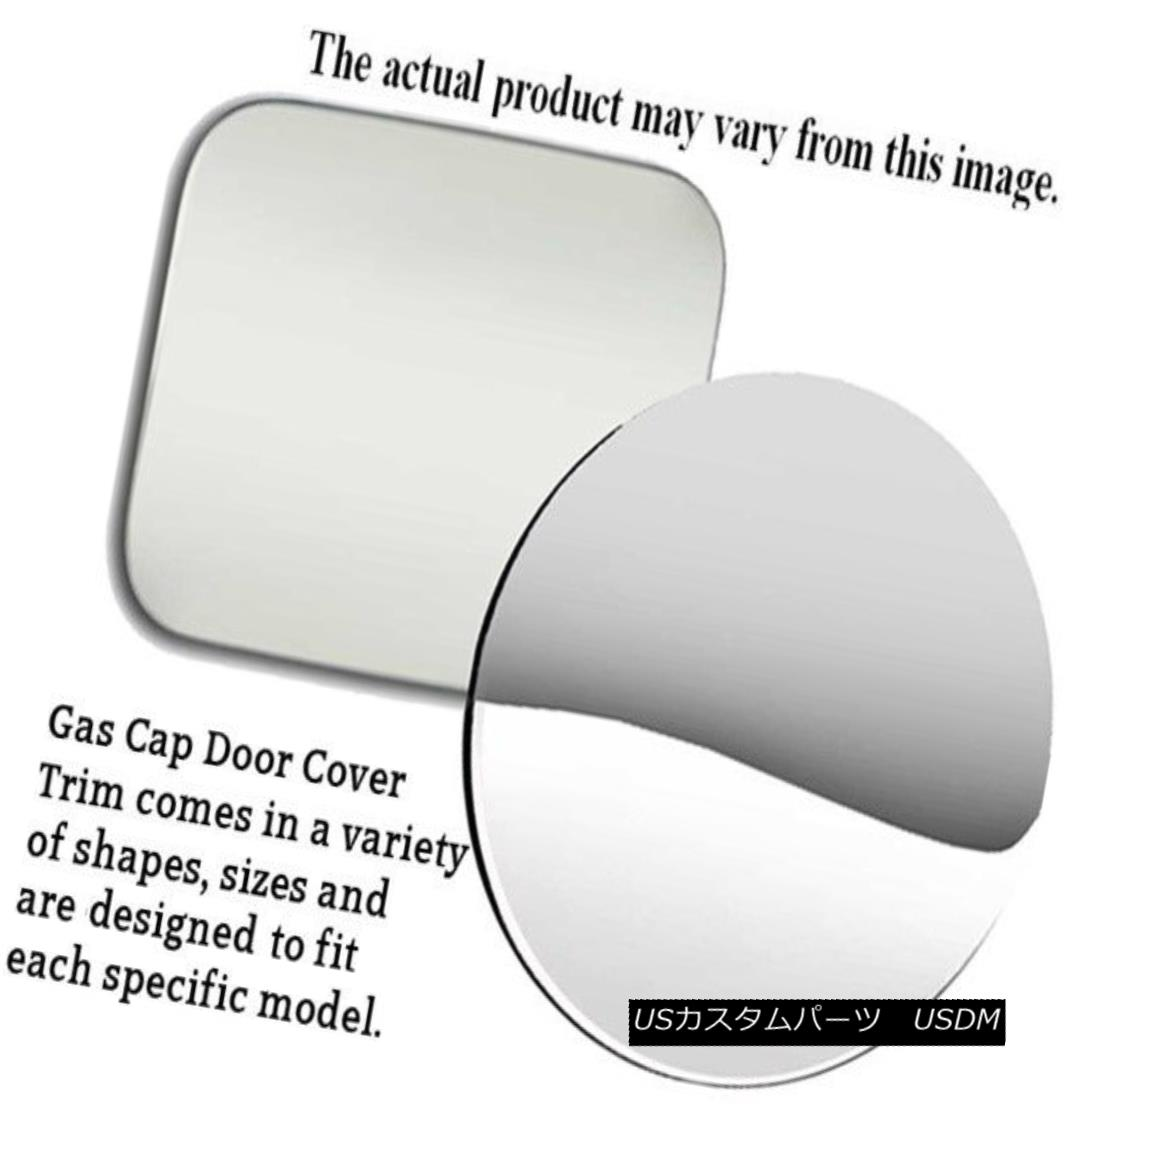 グリル Fits 2000-2005 CHEVROLET IMPALA 4-door -Stainless Steel GAS CAP DOOR 2000-2005年に合うCHEVROLET IMPALA 4ドア - ステンレススチールガスCAP DOOR